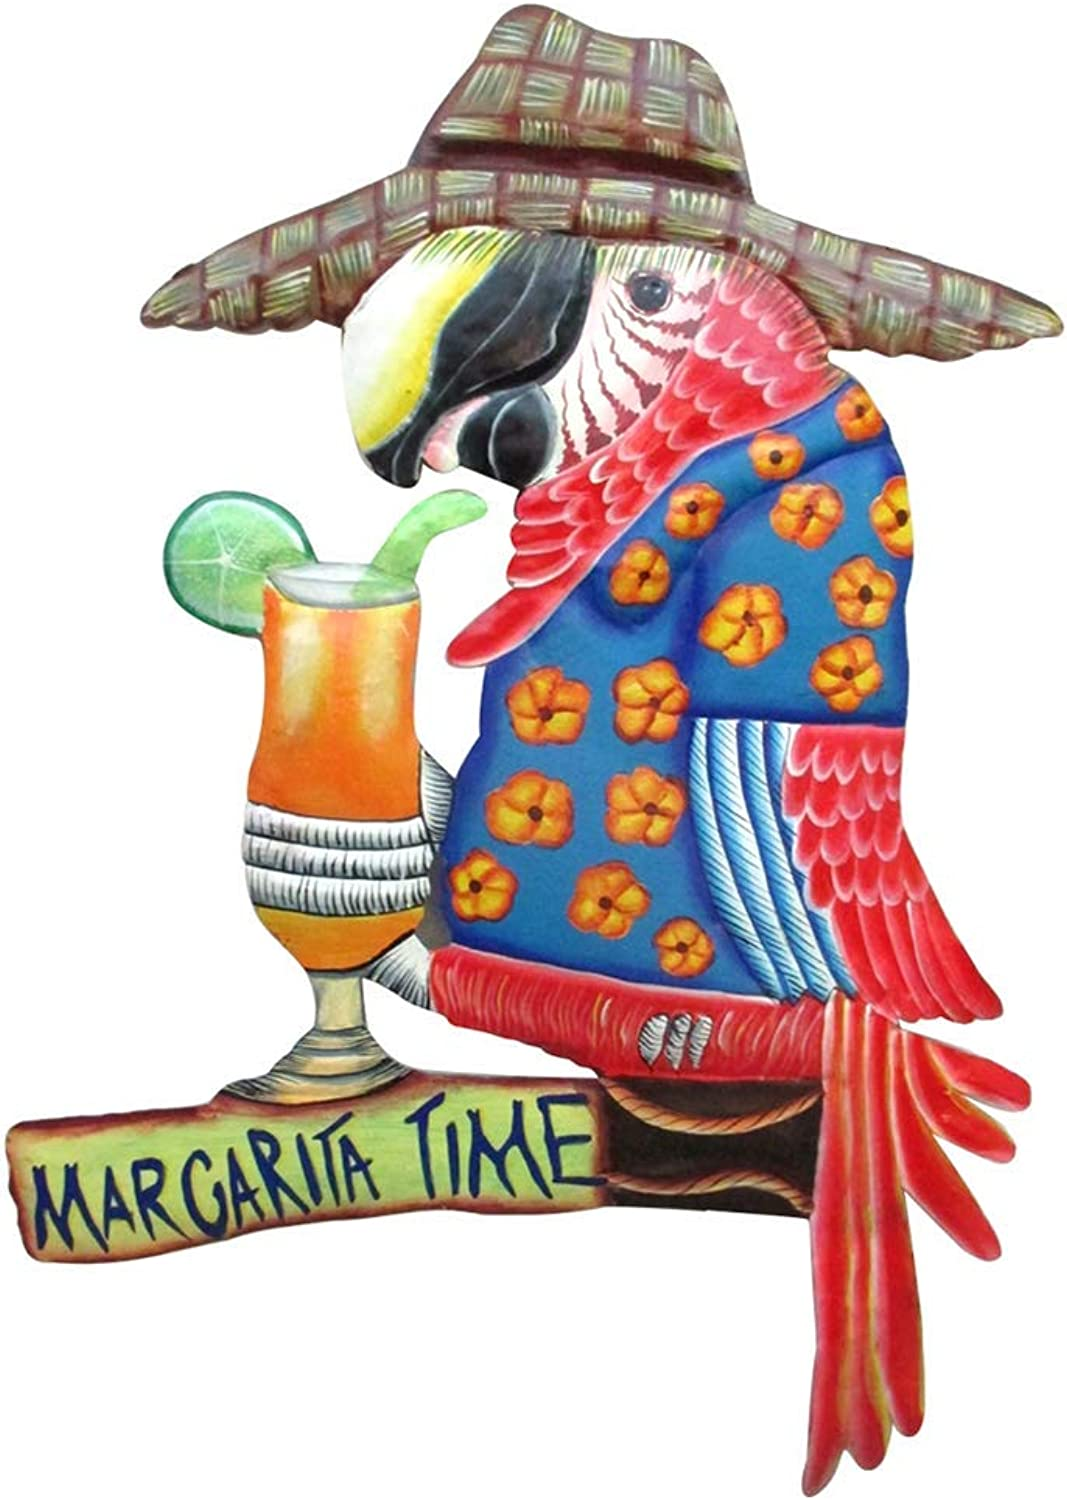 Margarita Time Parred Metal Wall Art, colorful Bar Sign for Man Cave, Summer Beach House Décor Accessory